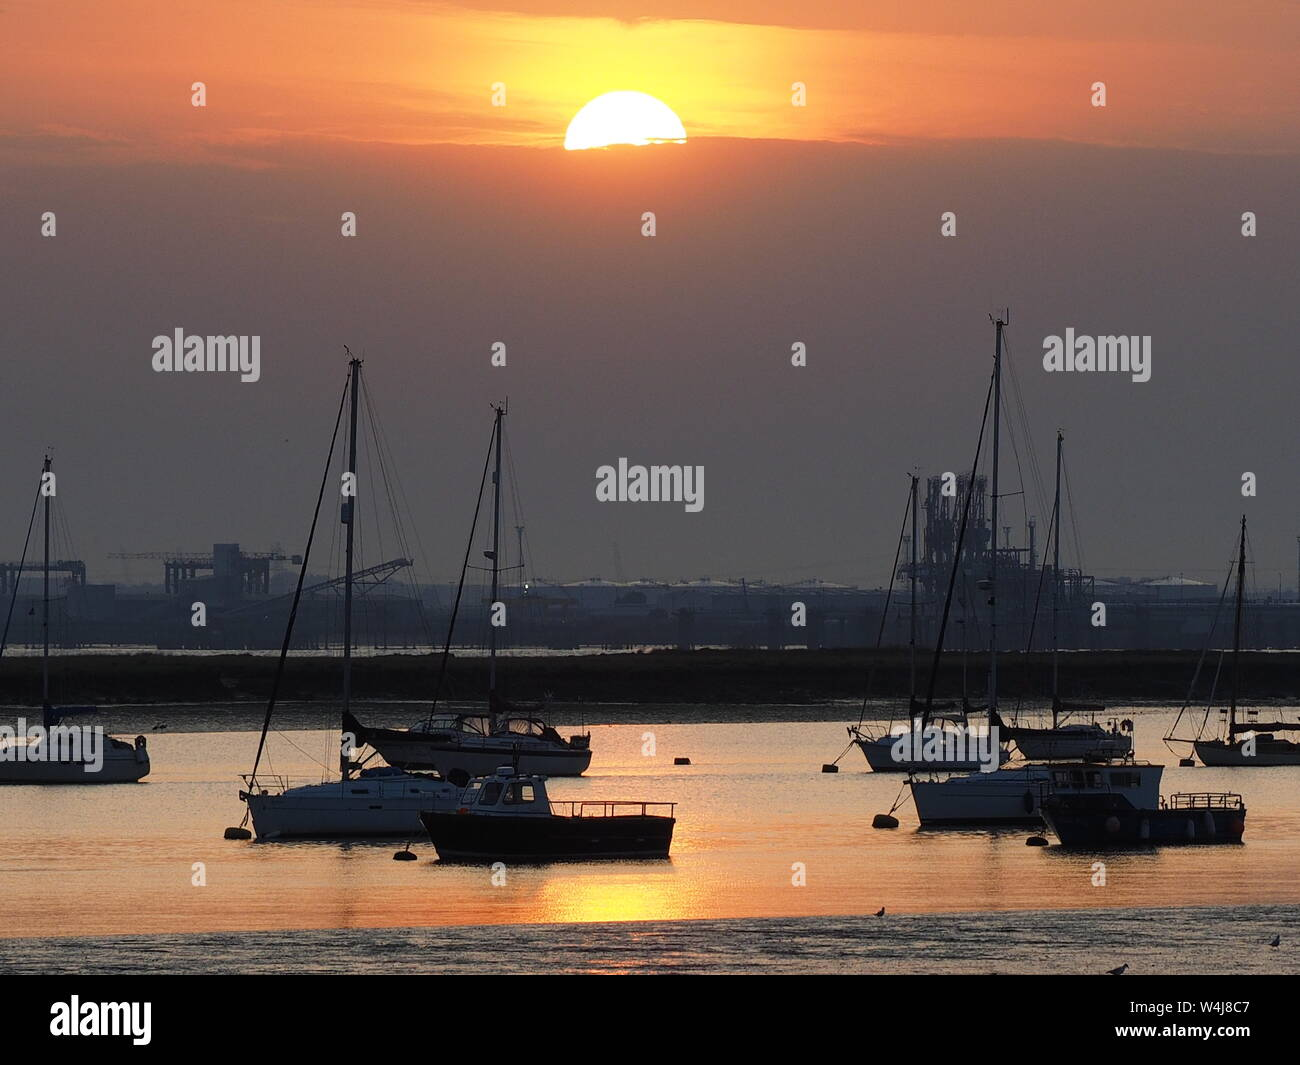 Queenborough, Kent, UK. 23rd July, 2019. UK Weather: this evening's sunset in Queenborough, Kent at the end of a hot and humid day. Credit: James Bell/Alamy Live News Stock Photo